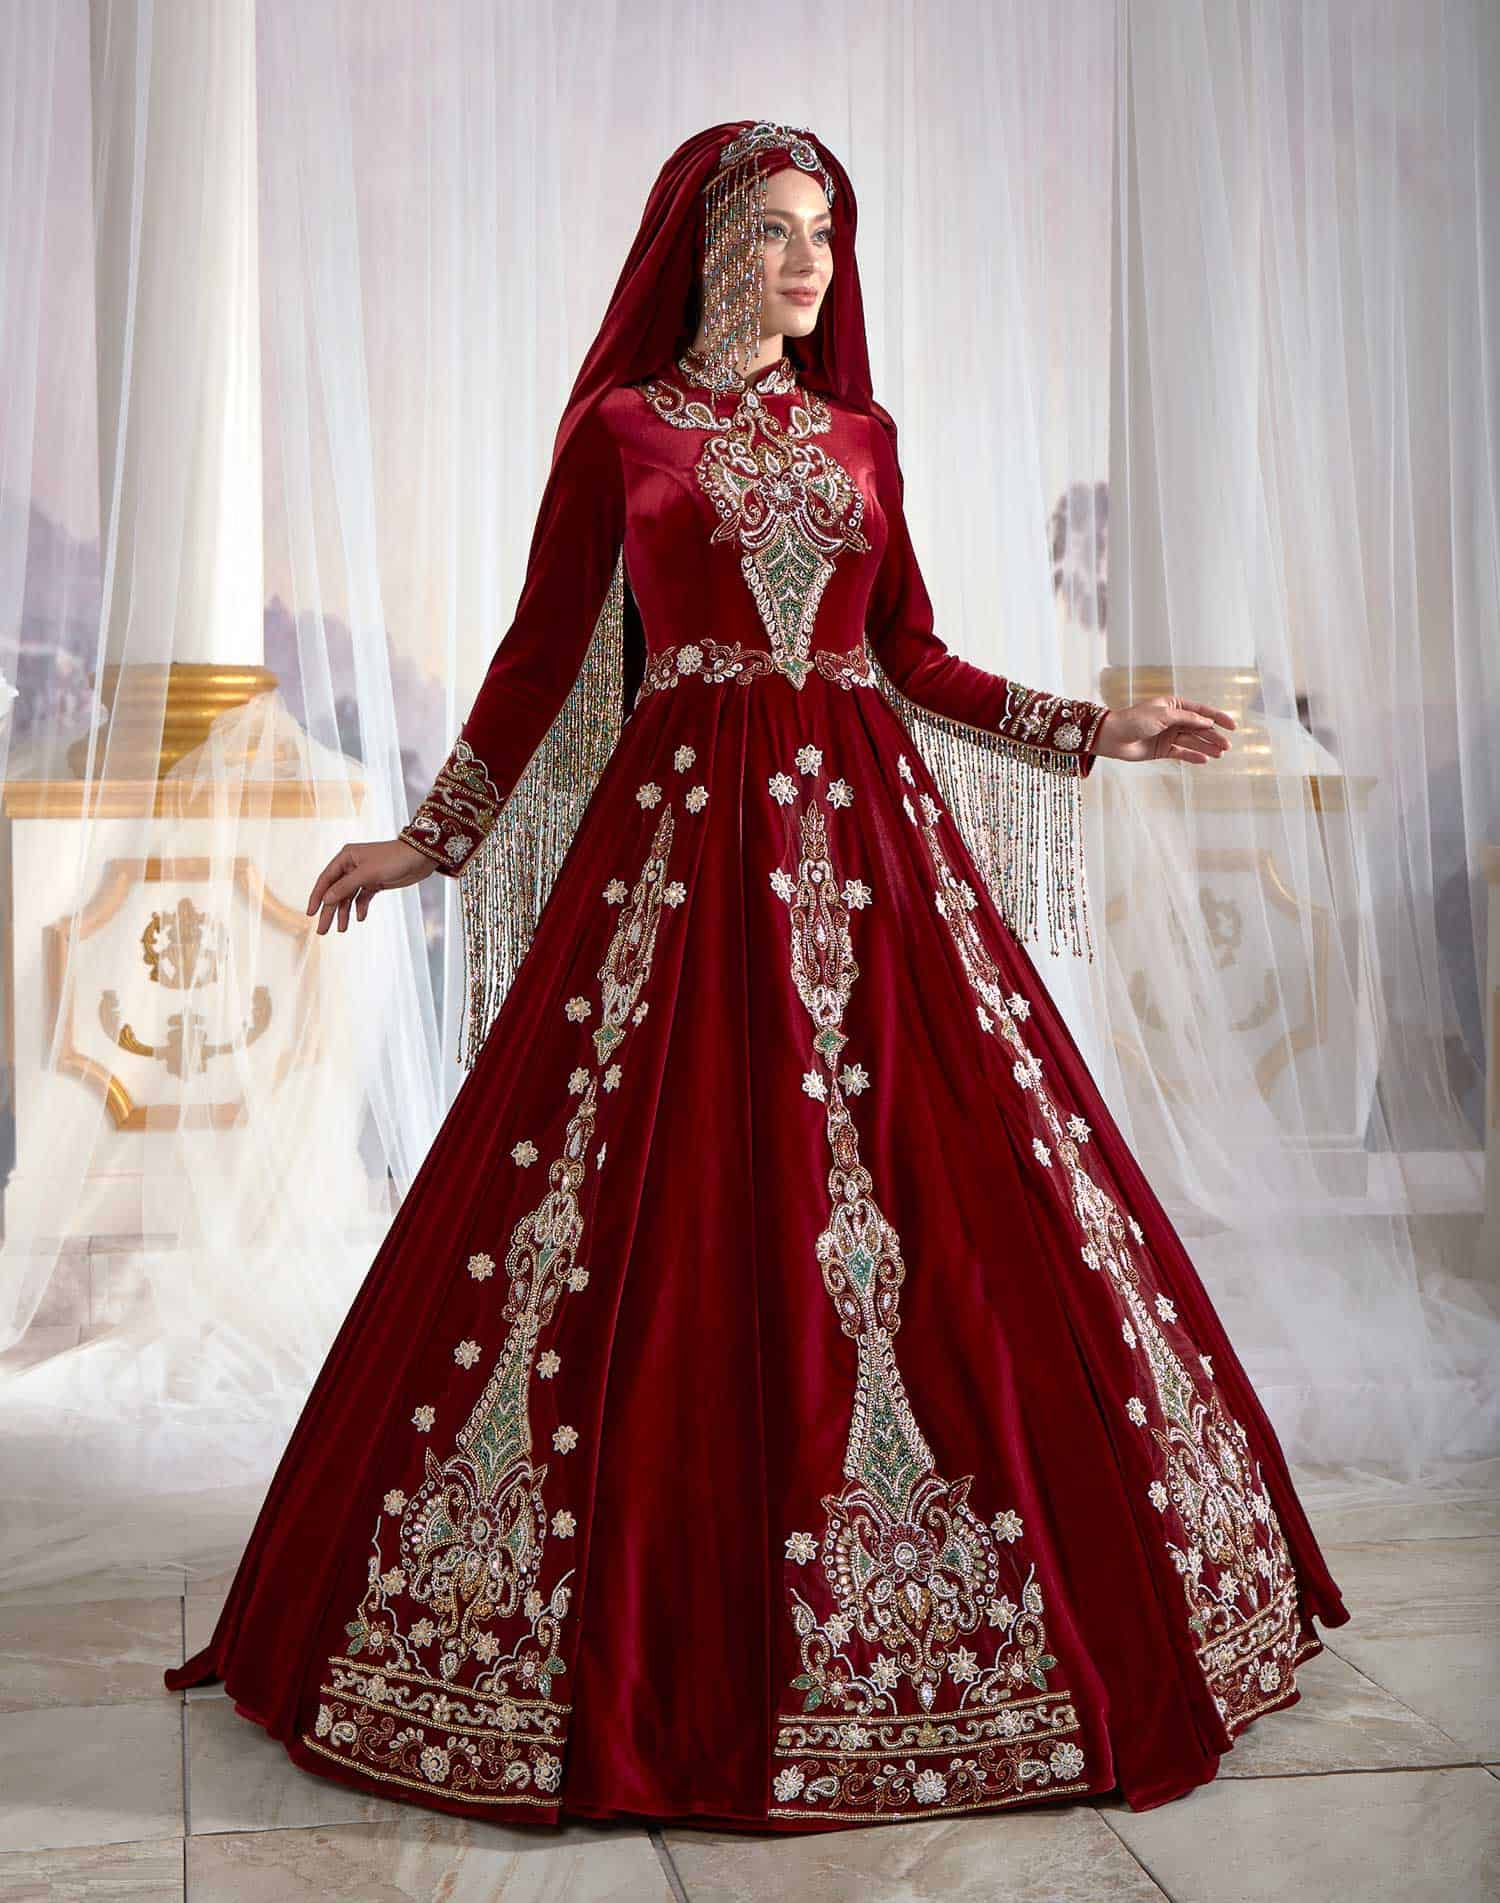 Maroon Modest Caftan Dress Hijab Clothing Long Sleeve Muslim Party Gown